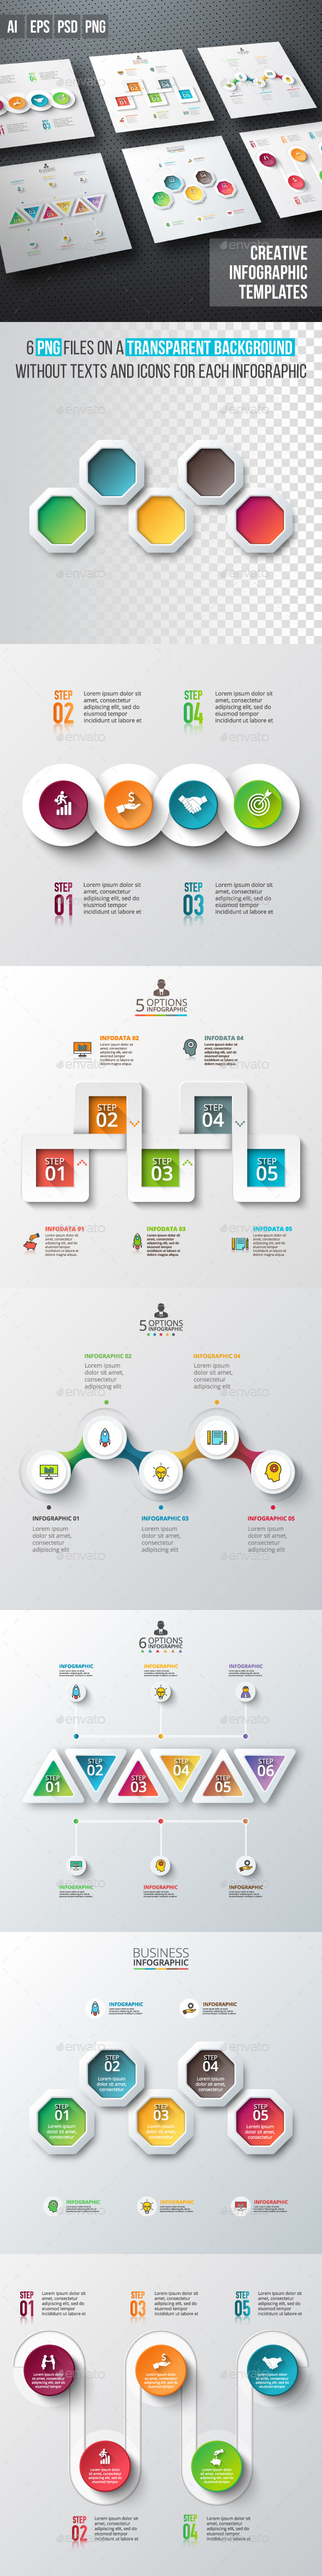 Business infographic diagrams v.04 - Infographics